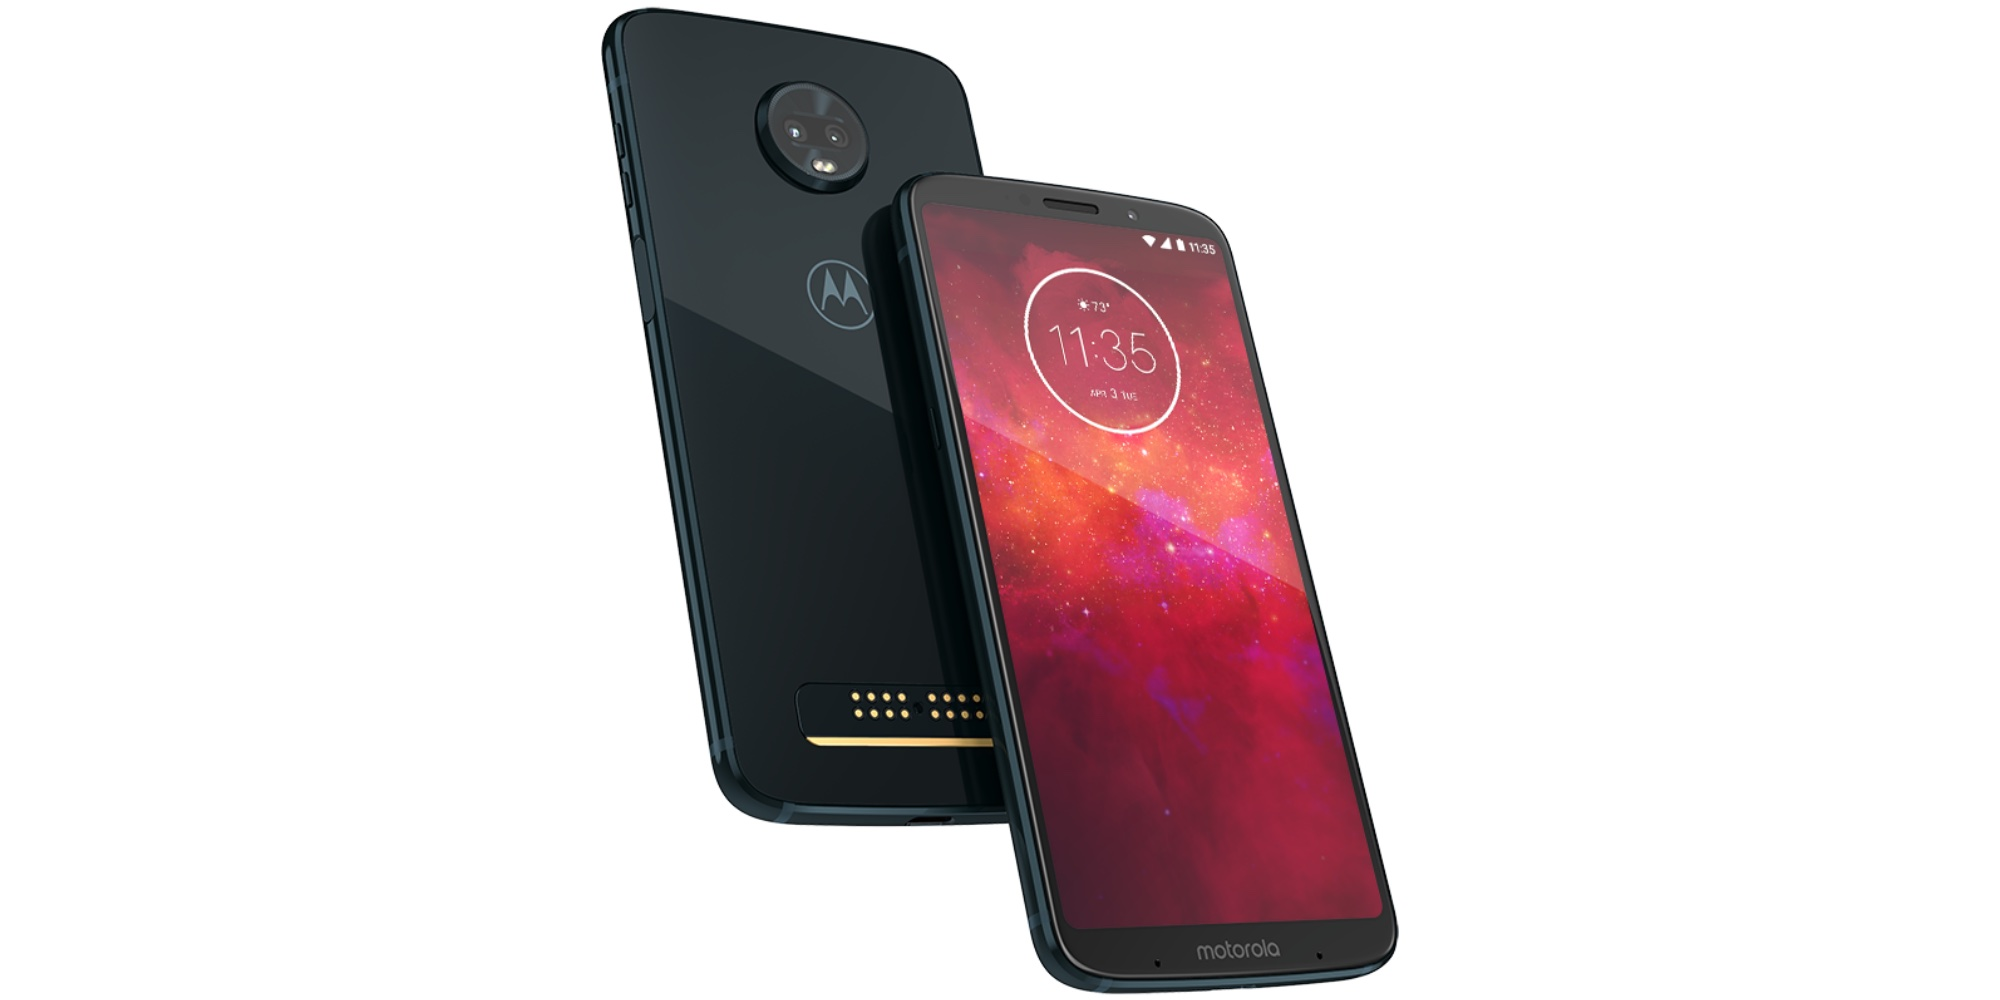 Save up to $170 on unlocked Moto Z3 Play Android smartphones priced from $150 - 9to5Toys